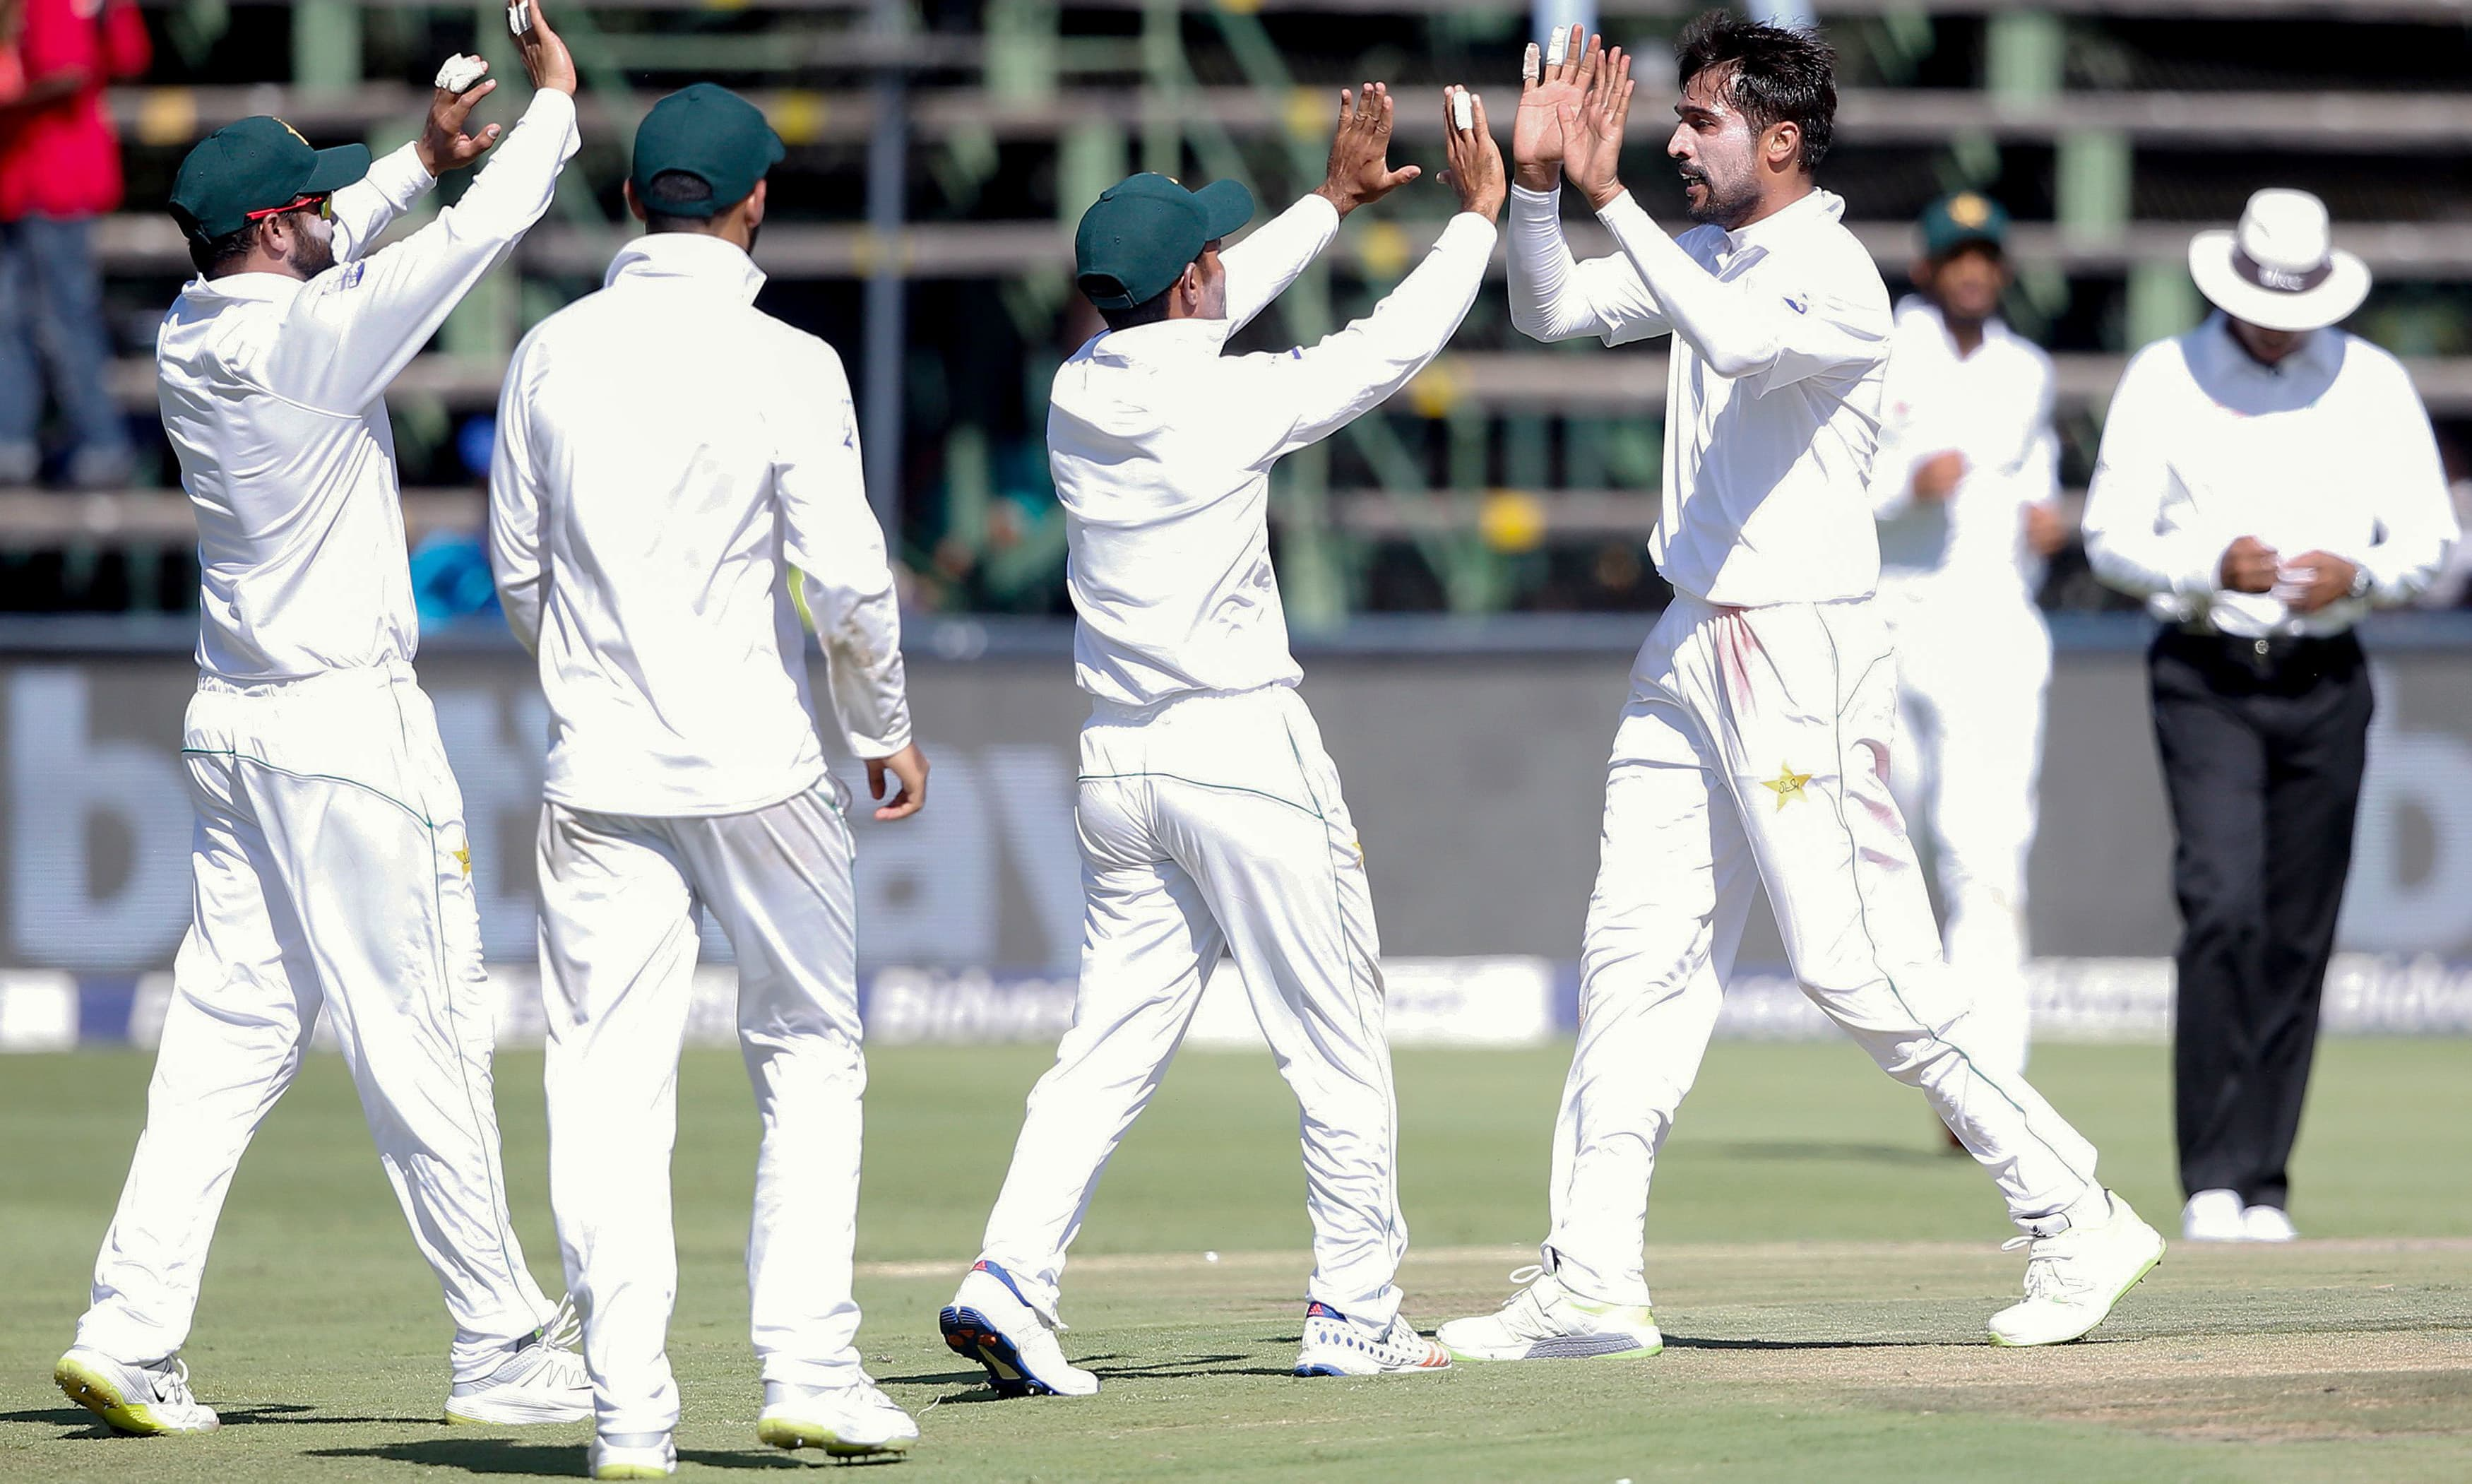 Mohammad Amir celebrates the dismissal of South Africa's batsman Zubayr Hamza during the first day of the third Cricket Test match. —AFP